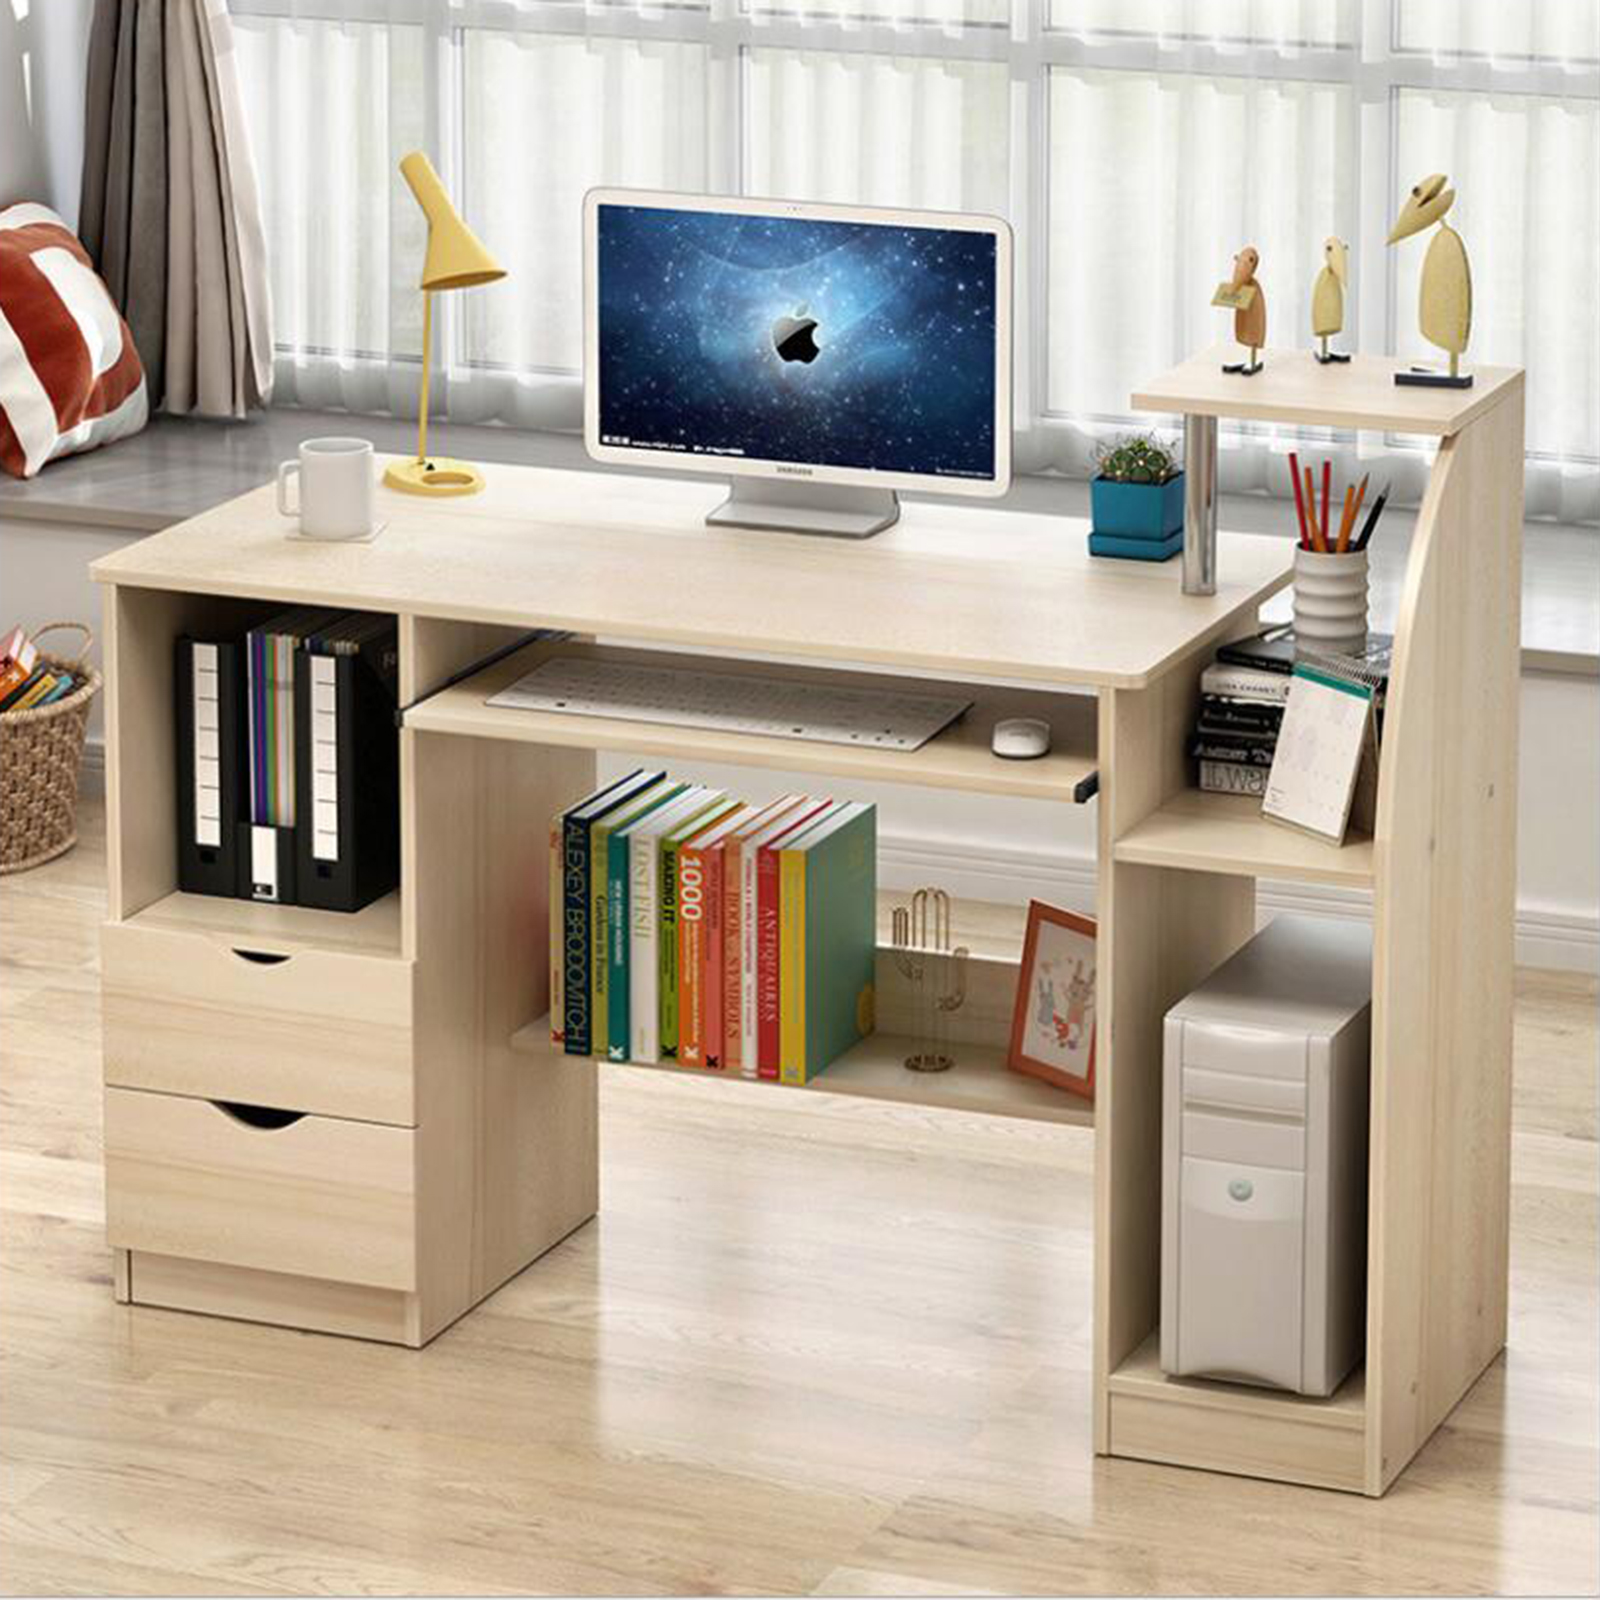 White/Yellow Home Office Computer Desk Bookcase Workstation Study Table Cabinet With Drawers